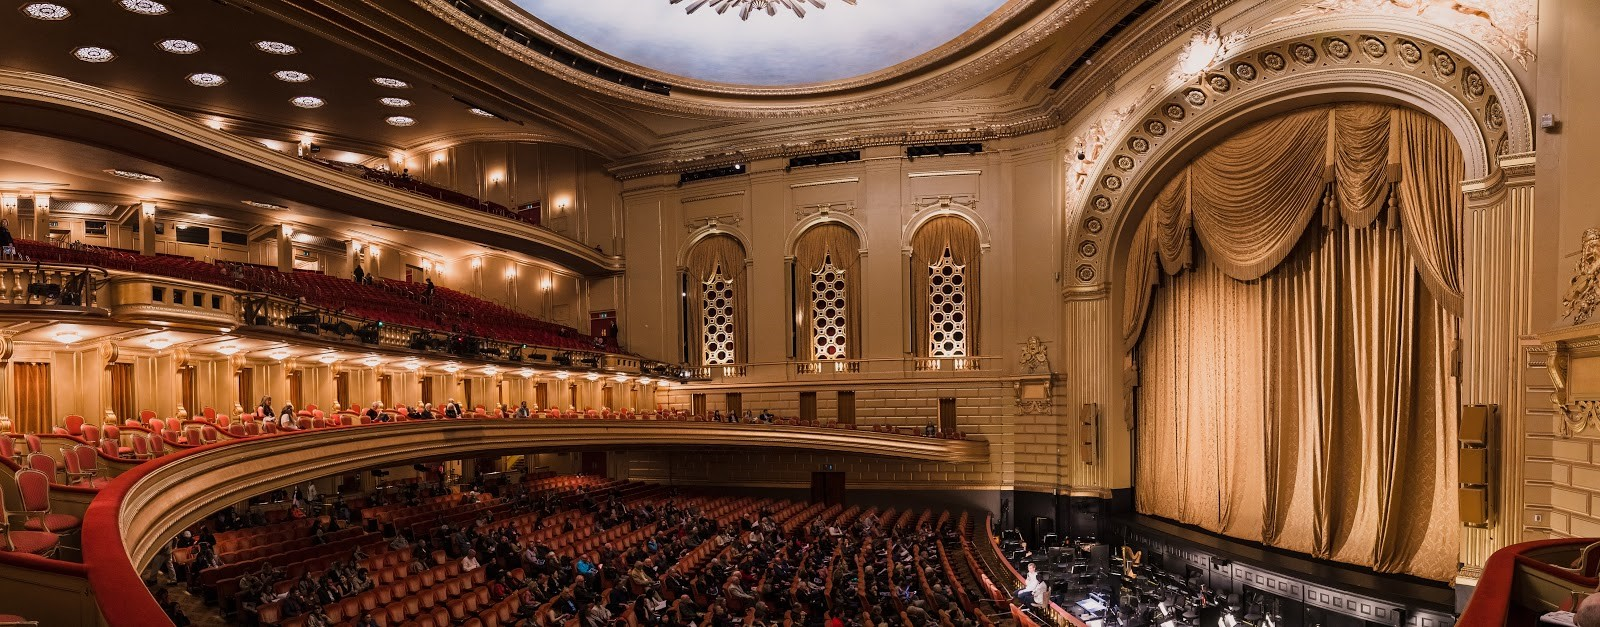 SAN FRANCISCO BALLET AND SAN FRANCISCO OPERA ANNOUNCE FINAL PHASE OF WAR MEMORIAL OPERA HOUSE SEAT UPGRADE PROJECT SCHEDULED FOR 2021